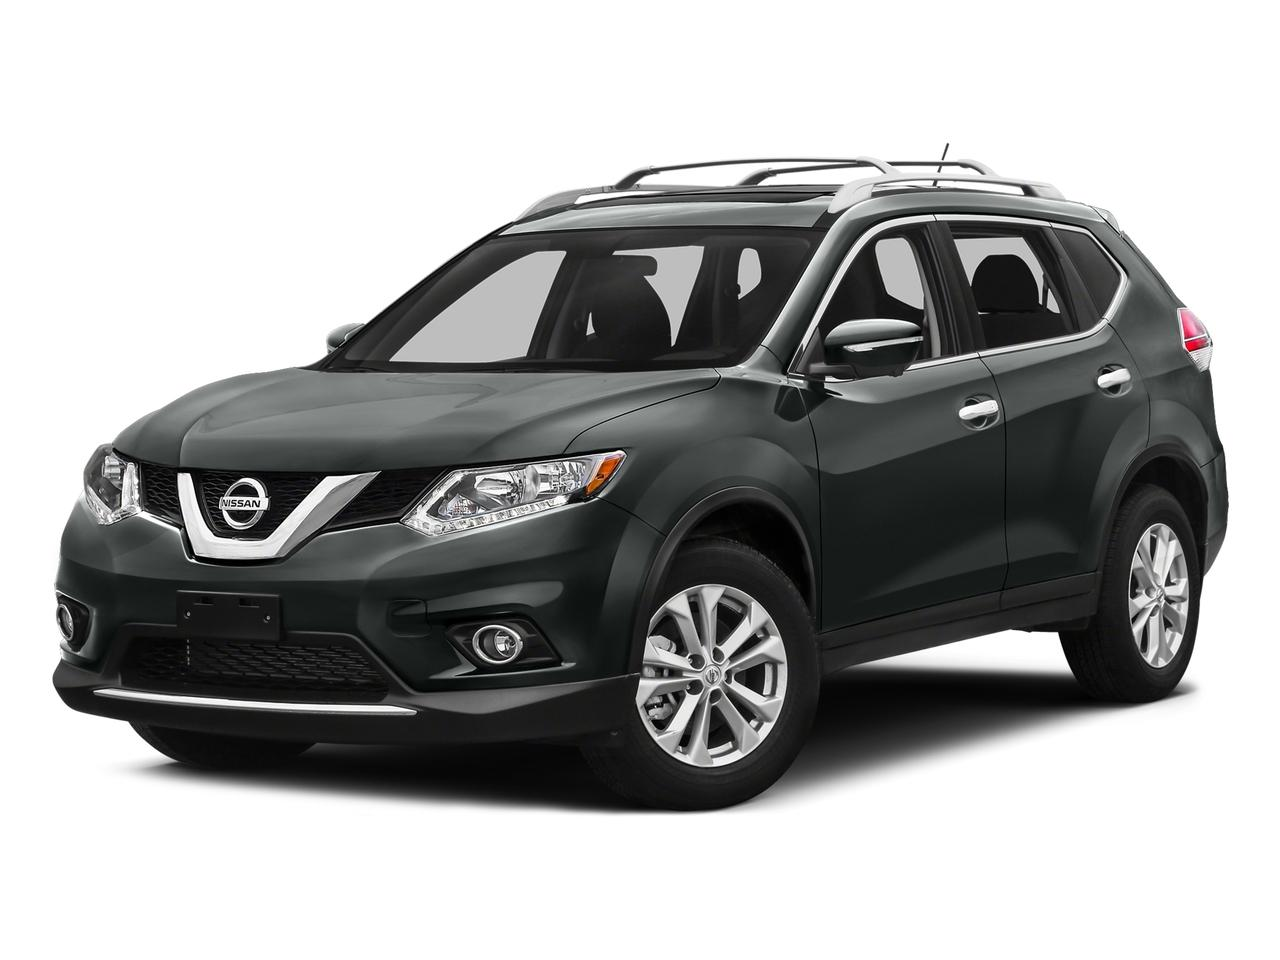 2016 Nissan Rogue Vehicle Photo in Killeen, TX 76541